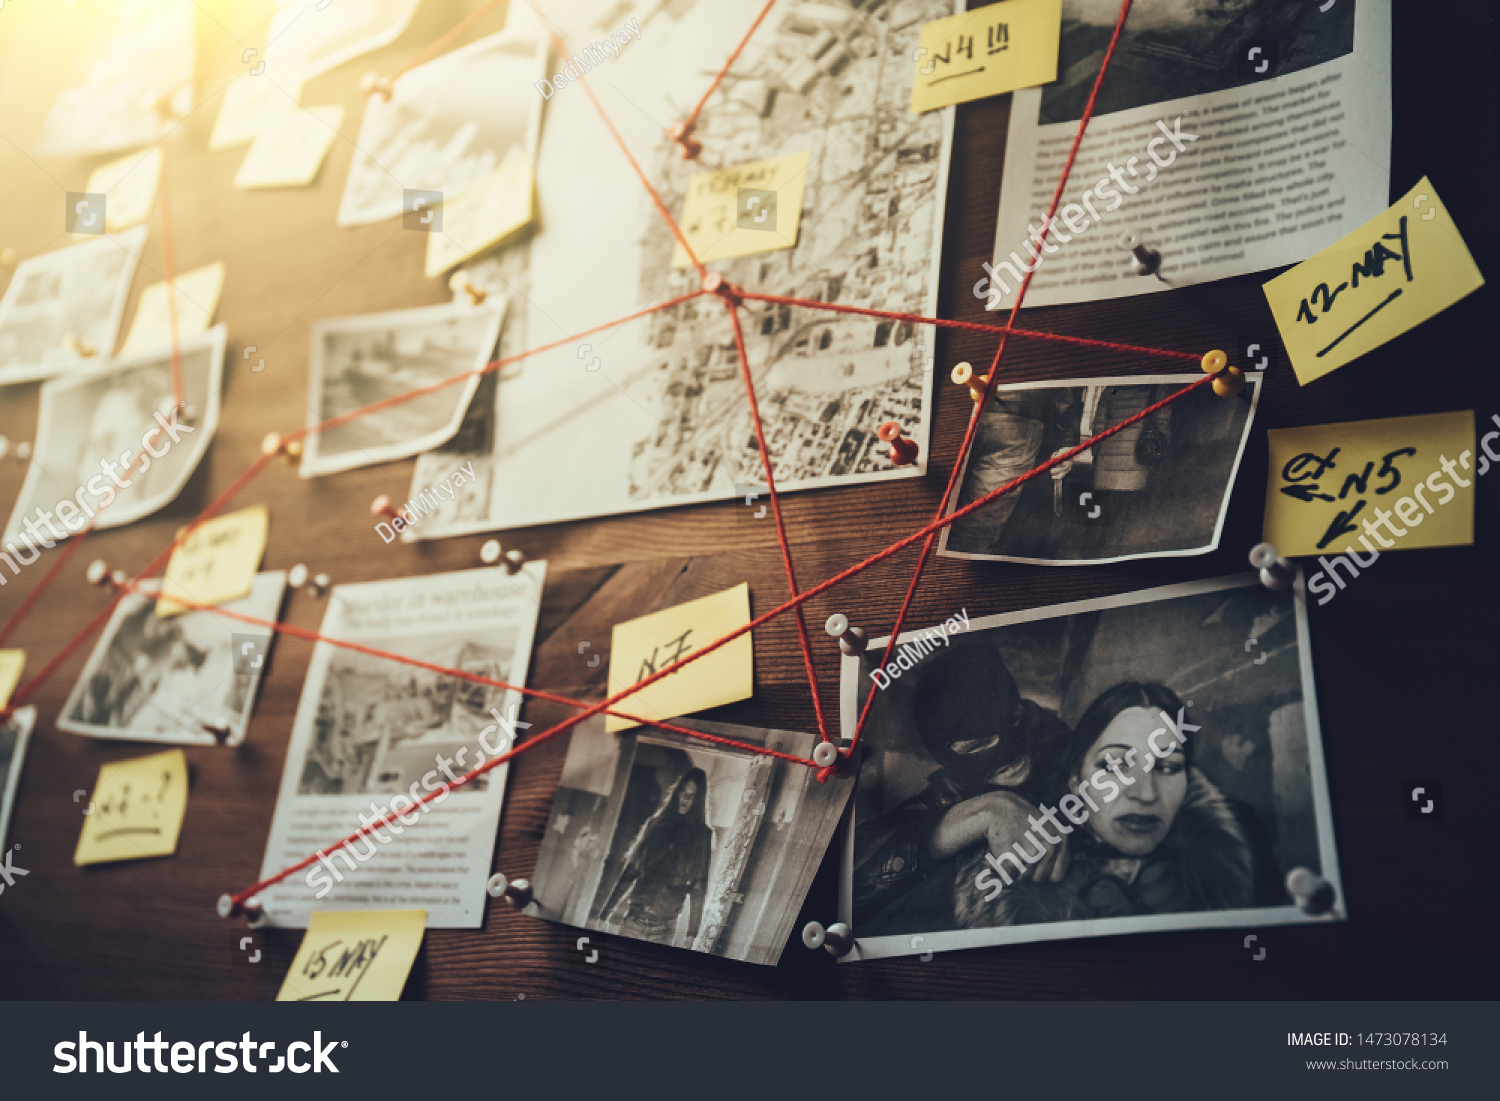 Detective board with photos of suspected criminals, crime scenes and evidence with red threads, selective focus, retro toned #1473078134